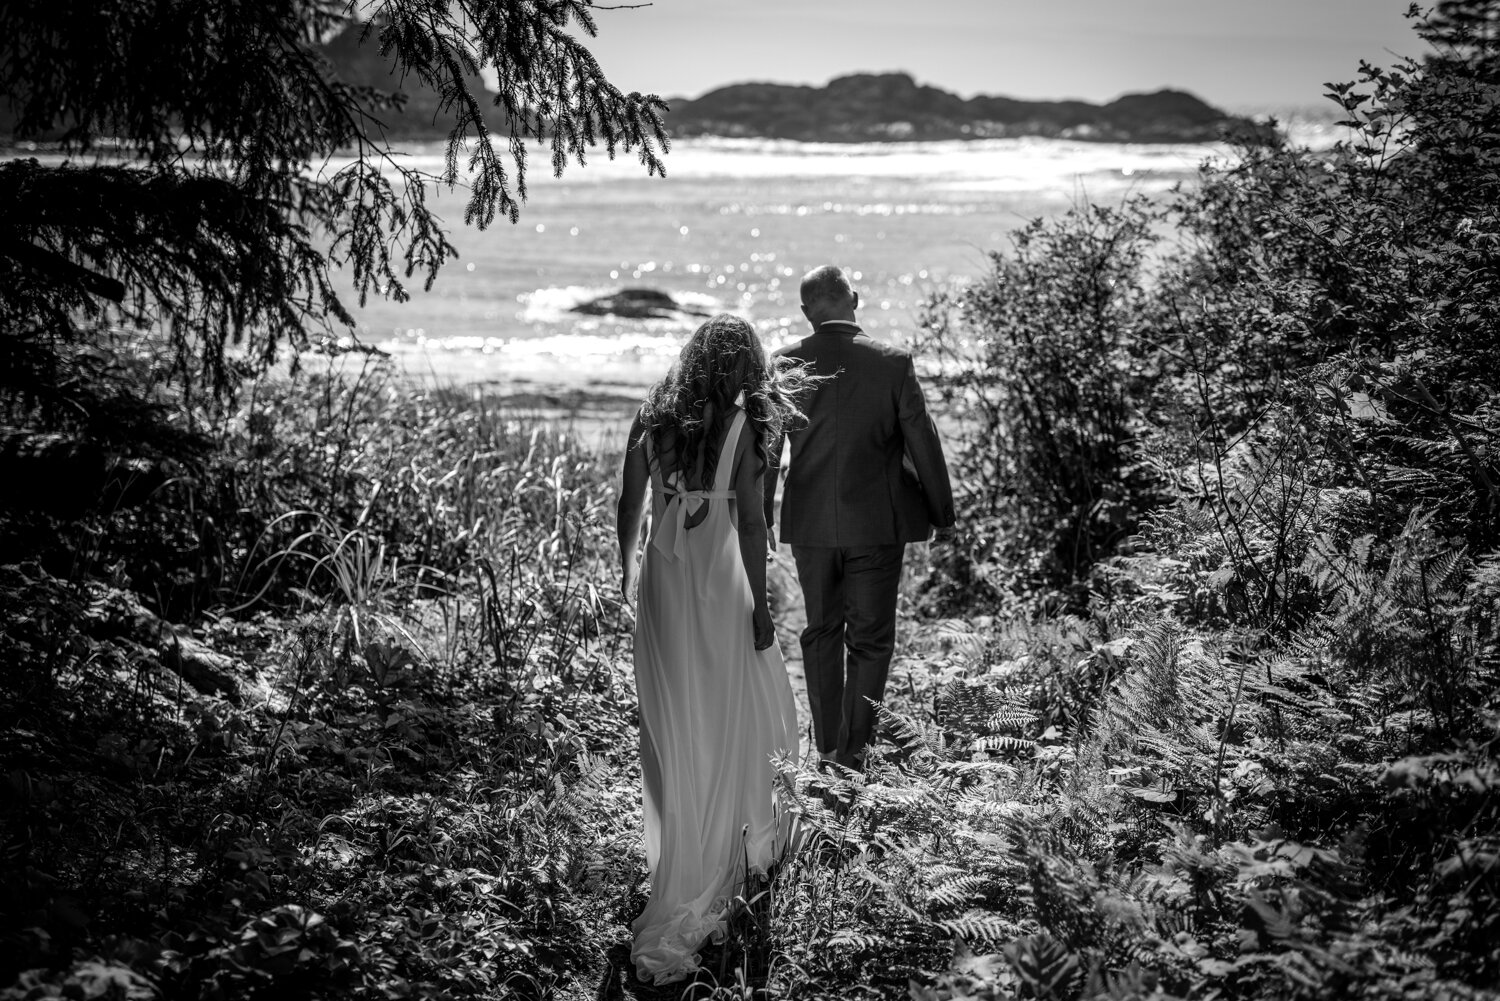 Ucluelet-Wya-Point-Wedding-Owen-Imaging-26.jpg